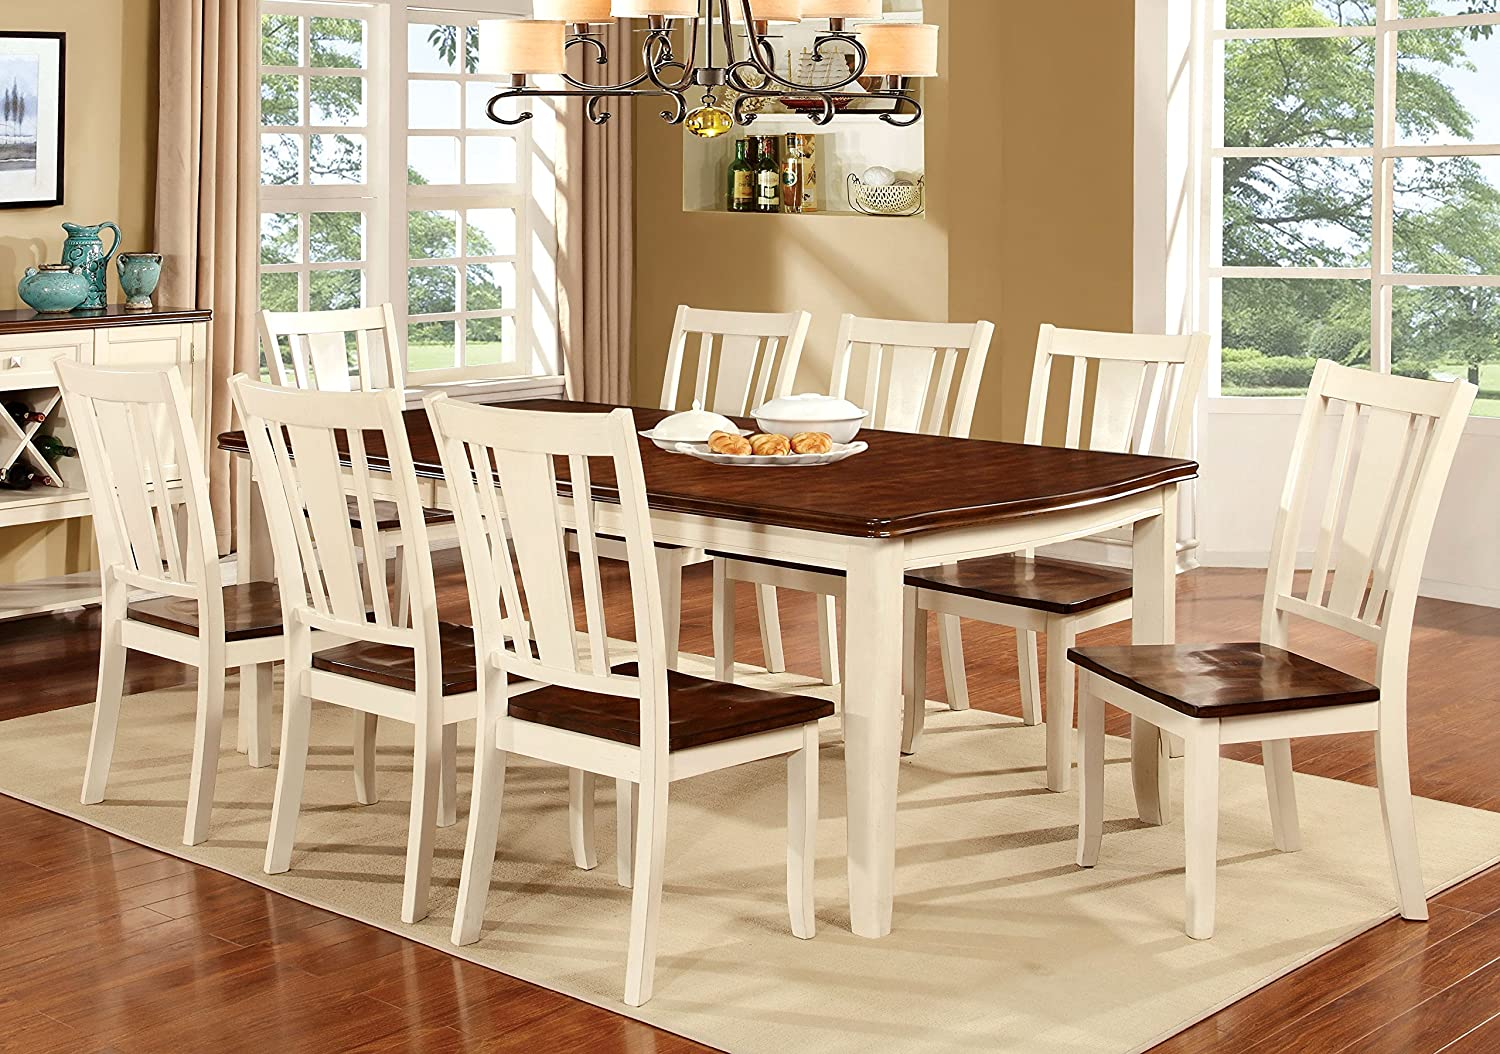 Amazon.com Furniture of America Macchio 9-Piece Transitional Dining Set Cherry/Vintage White Kitchen u0026 Dining & Amazon.com: Furniture of America Macchio 9-Piece Transitional Dining ...